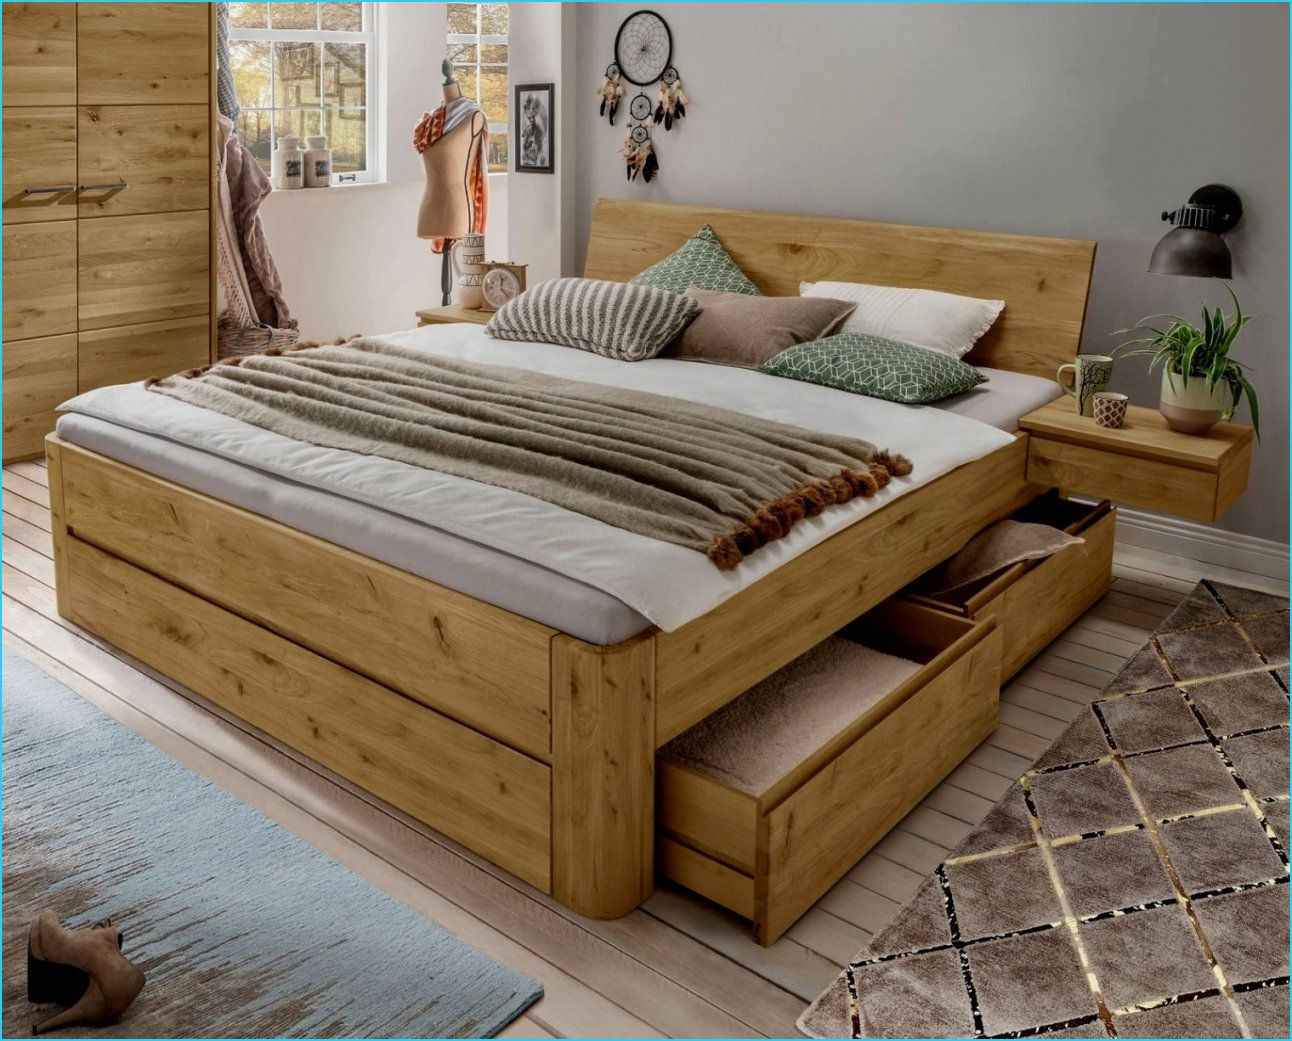 20 Prodigous Bett Holz 200x200 In 2020 Bed Frame With Drawers Home Decor Bed